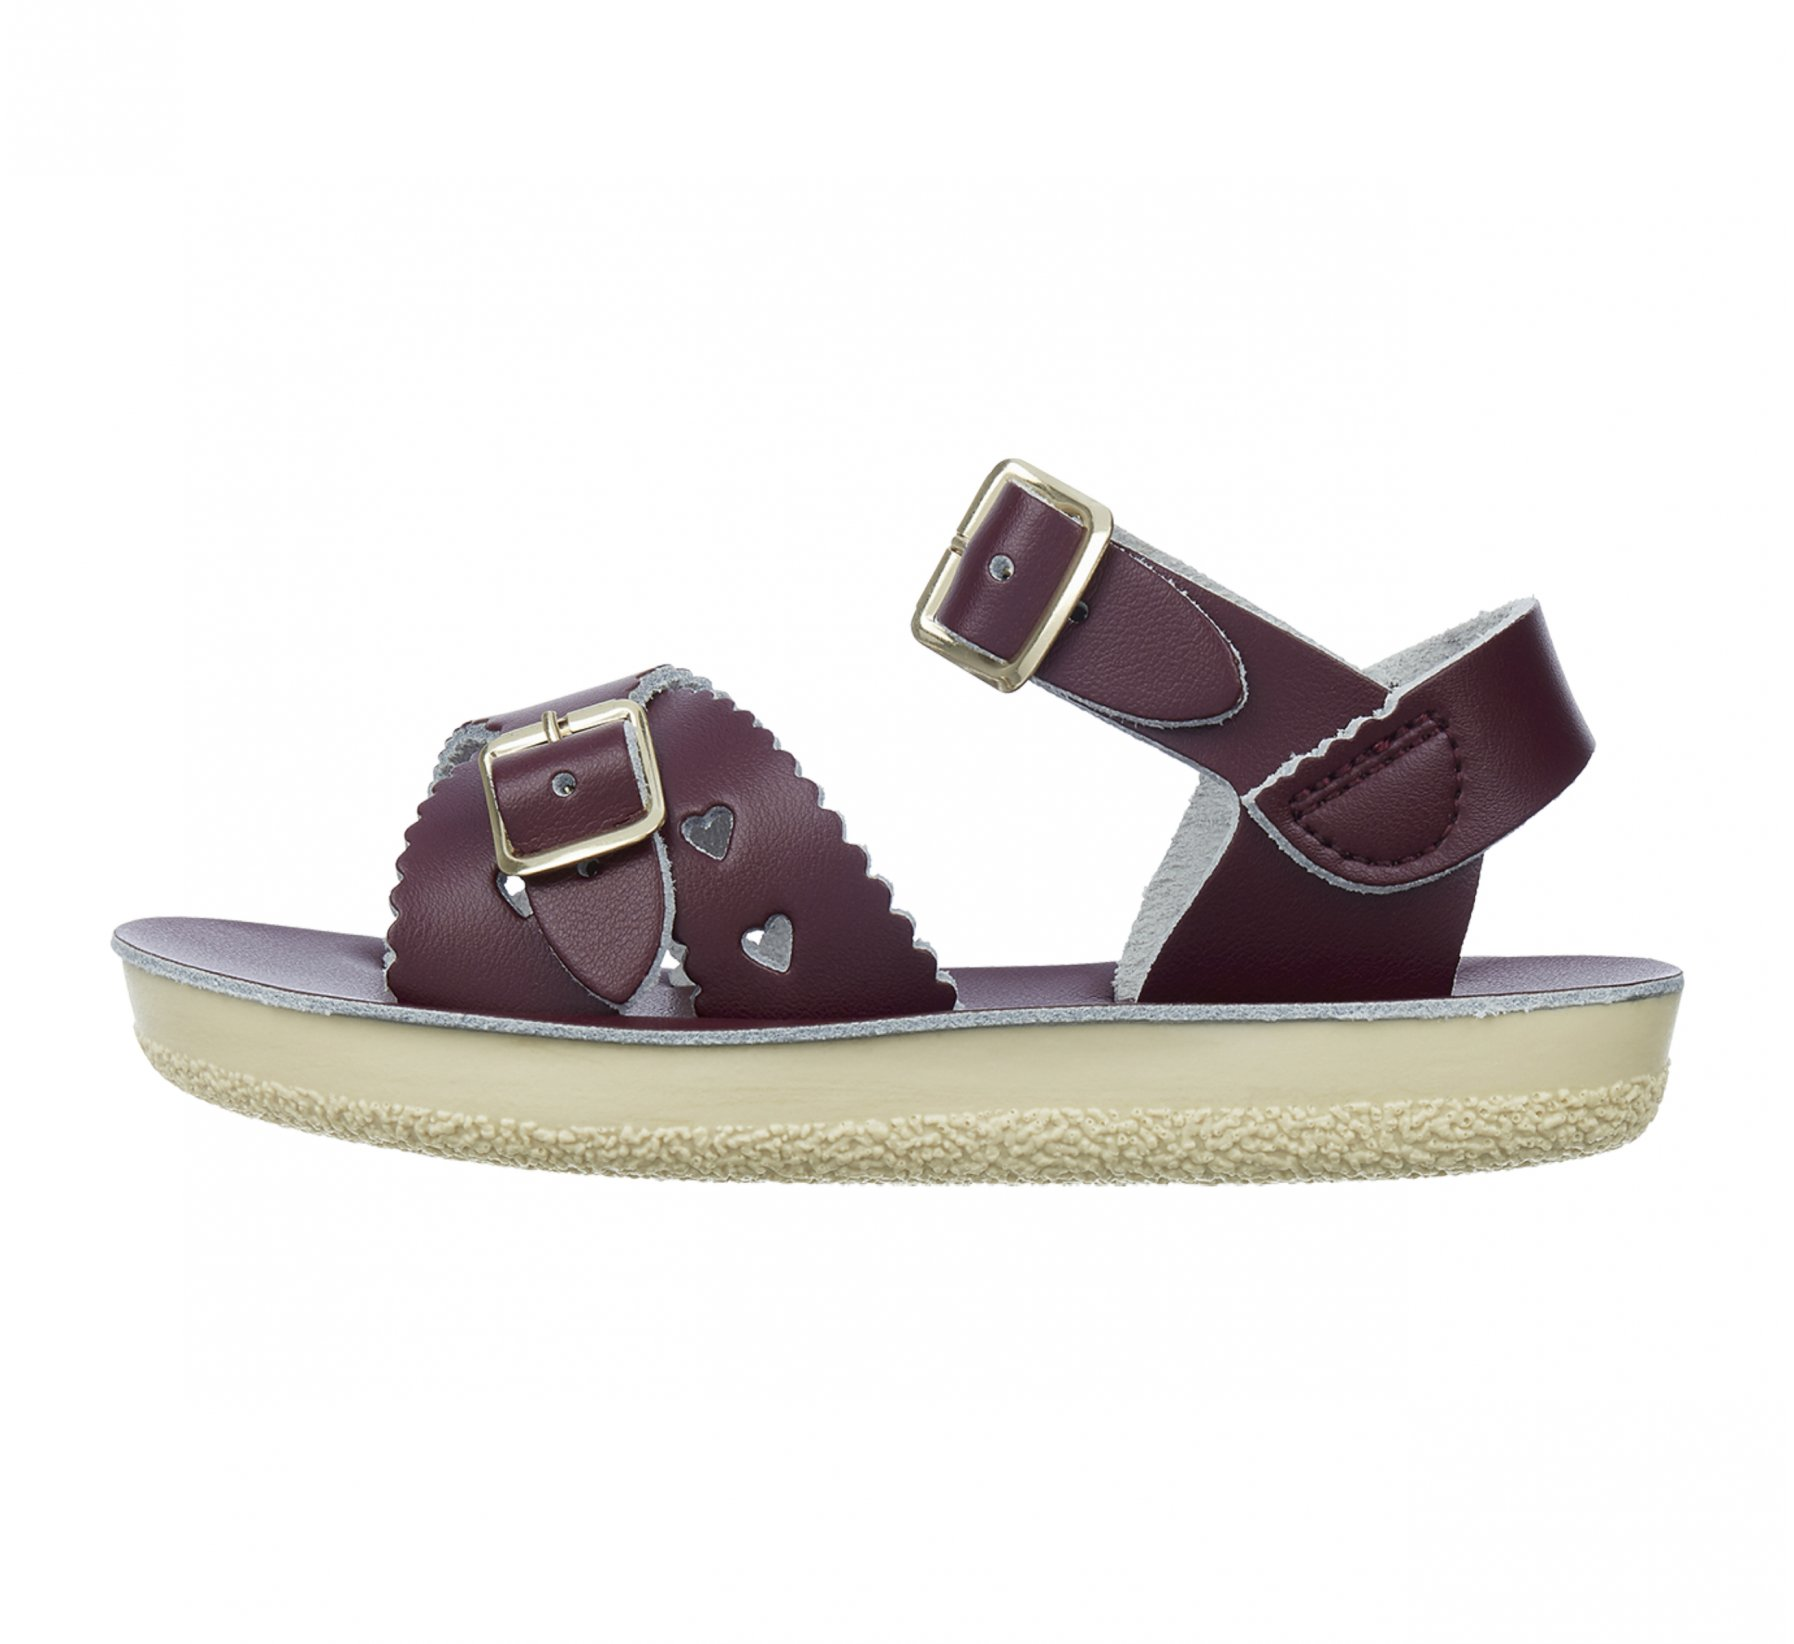 Sweetheart in Bordeaux - Salt Water Sandals